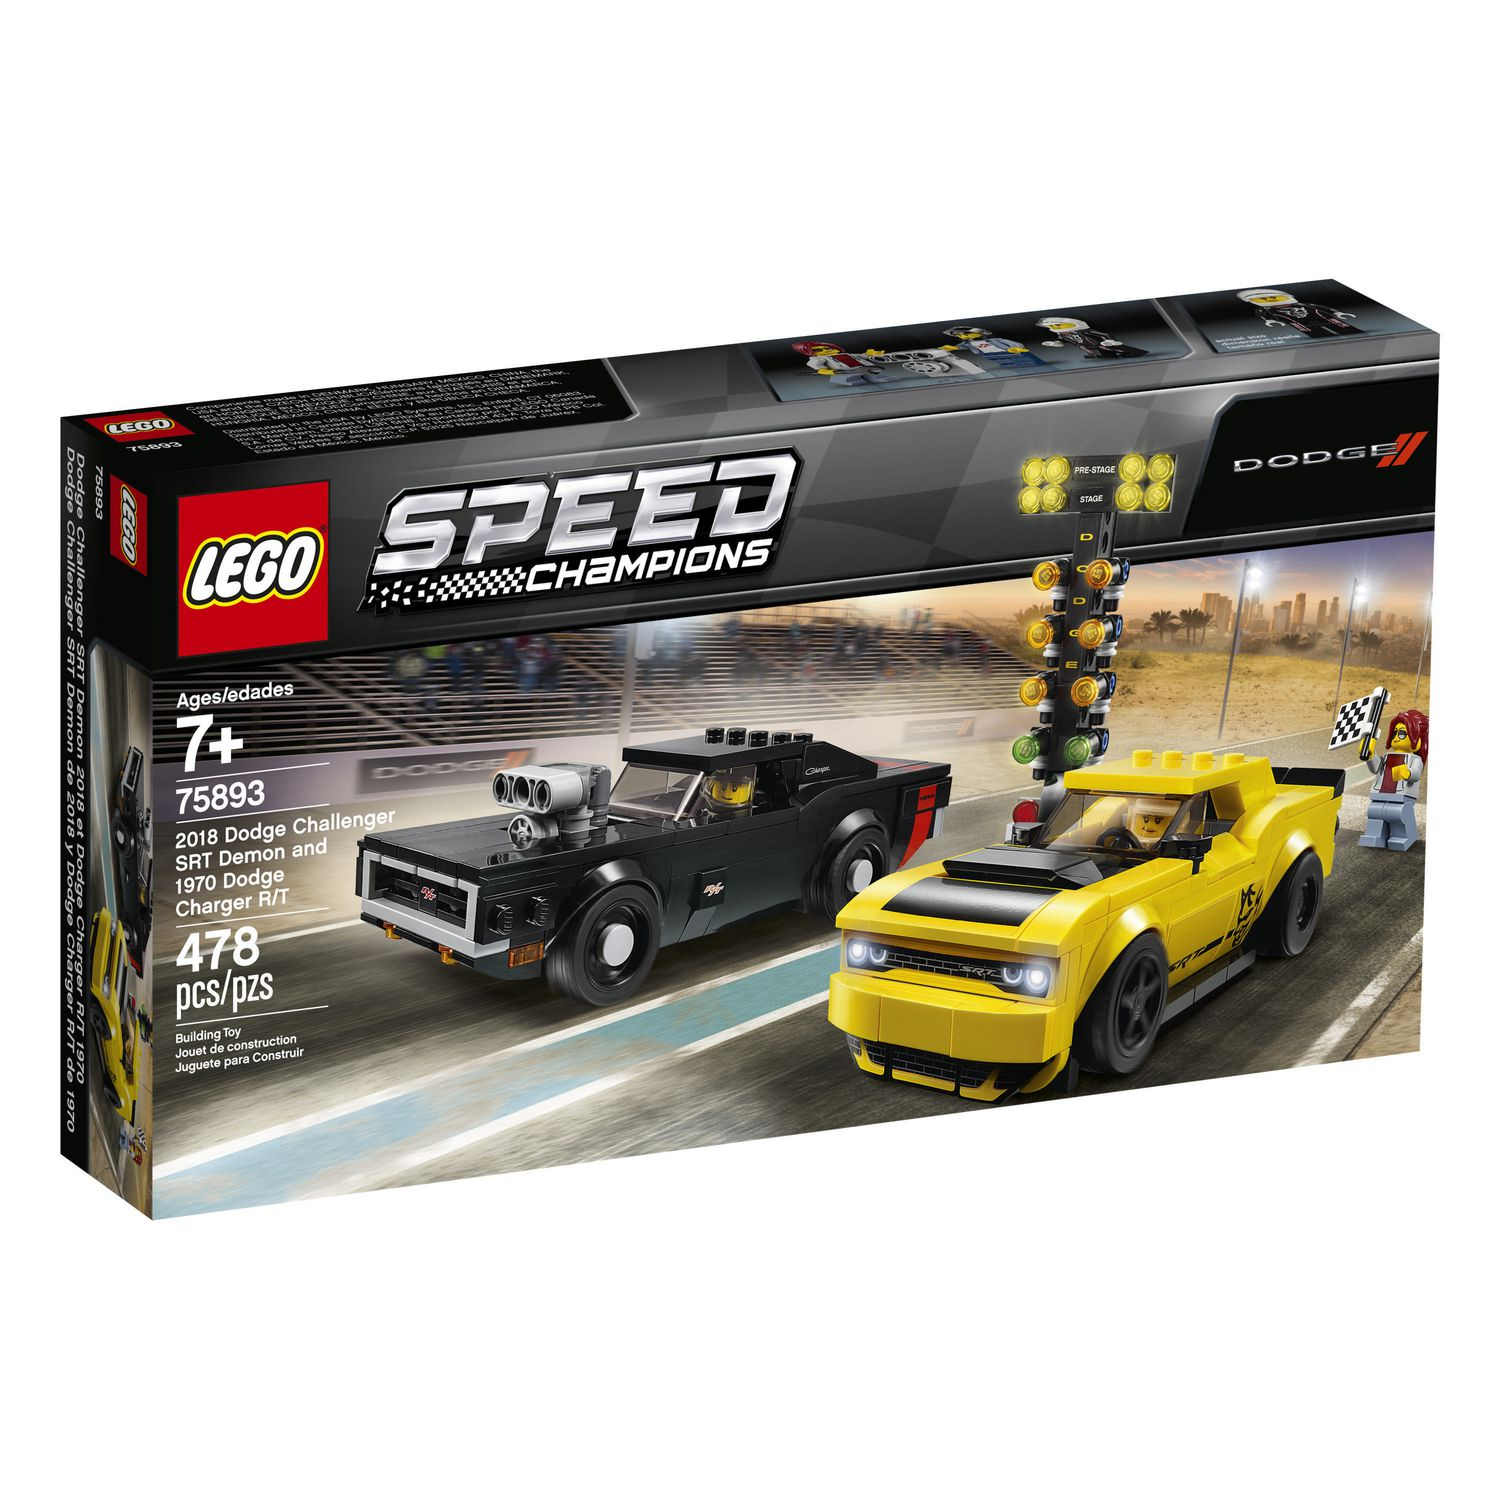 Meubles Challenger Lego Speed Champions 2018 Dodge Challenger Srt Demon And 1970 Dodge Charger R T 75893 Building Kit 478 Piece